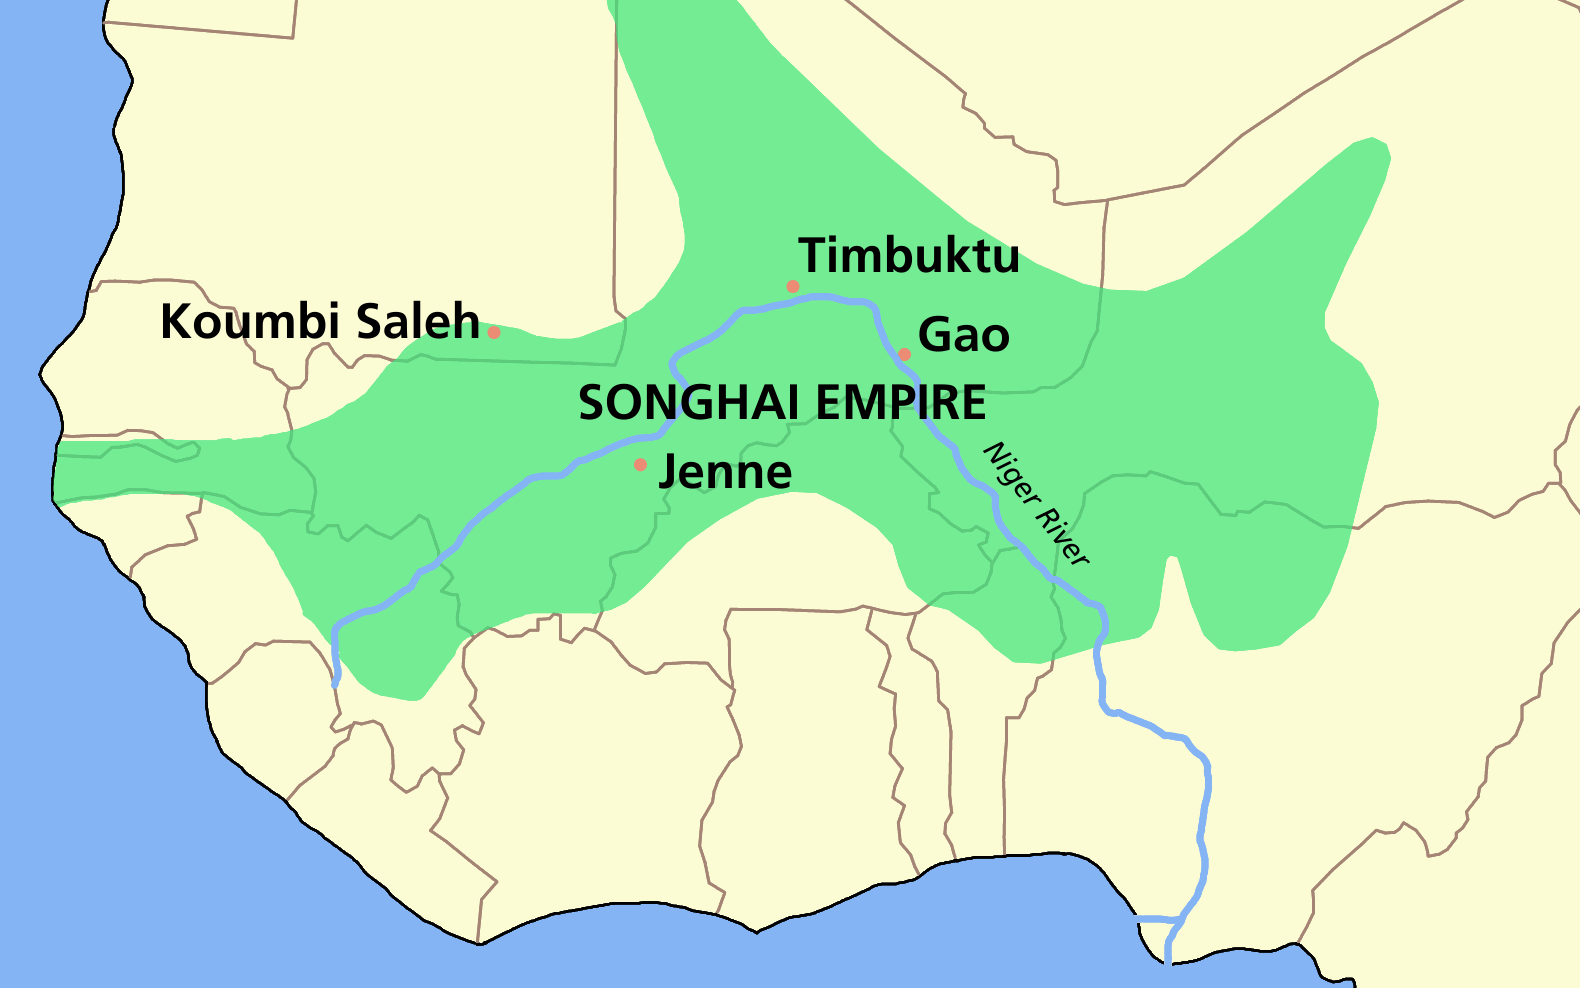 The extent of the Songhay Empire